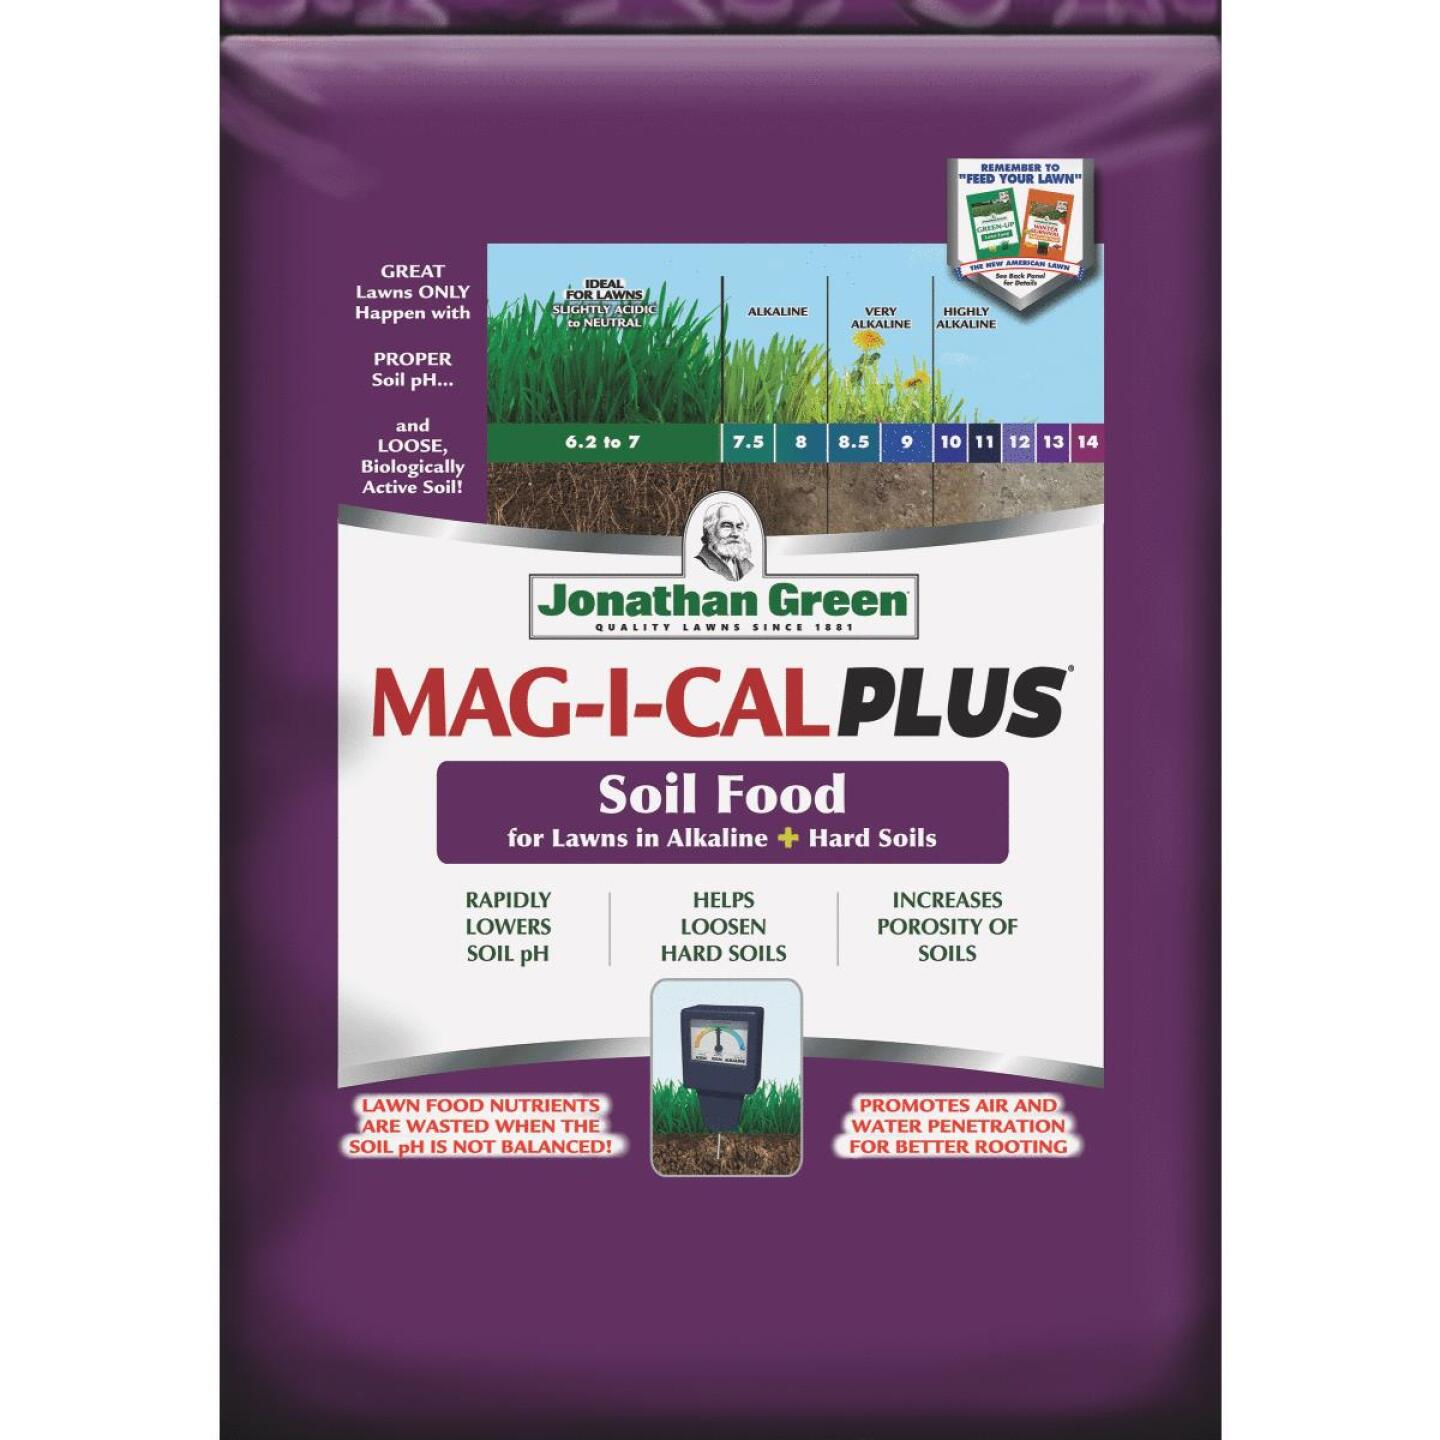 Jonathan Green MAG-I-CAL Plus 54 Lb. 15,000 Sq. Ft. 18% Calcium Lawn Fertilizer For Alkaline Soil Image 1